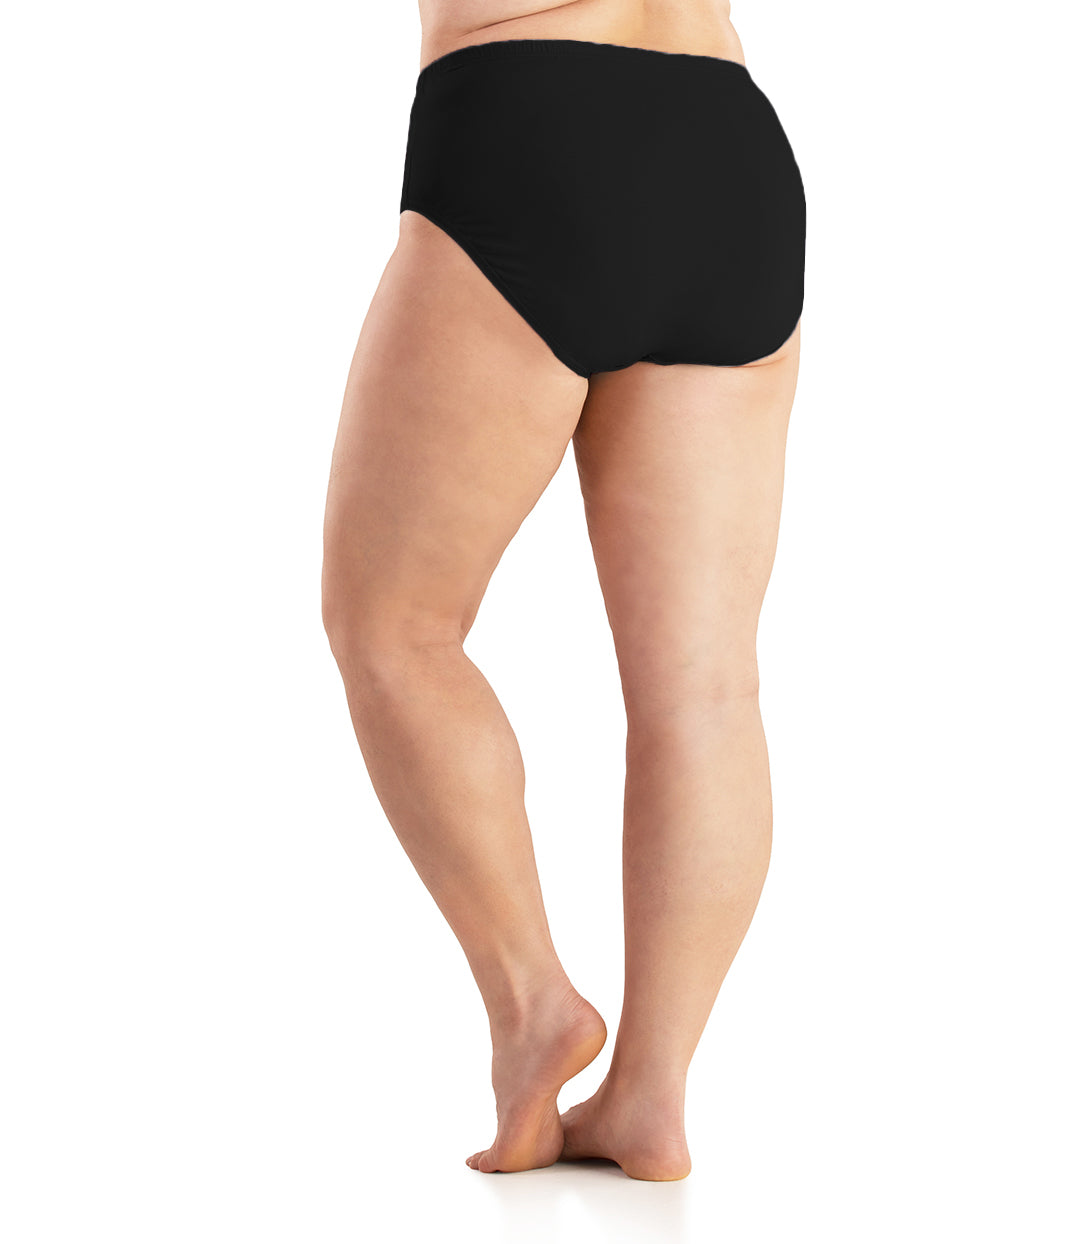 Junowear Cotton Stretch Classic Brief-Intimates Briefs-Hop Wo Trading Co Ltd-1X-BLACK-JunoActive